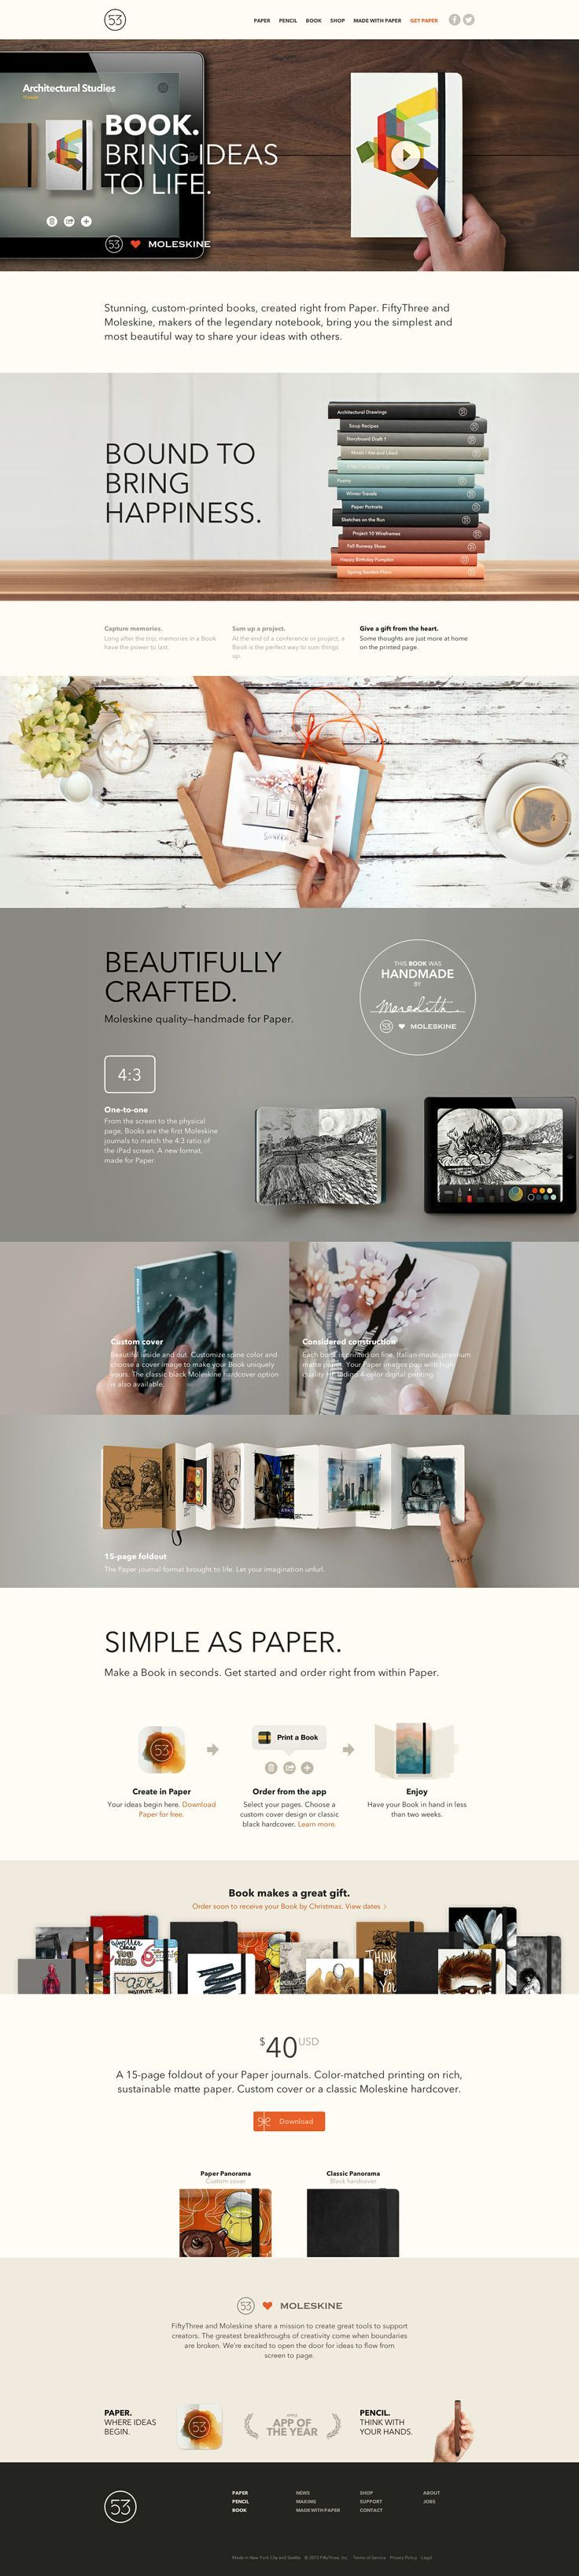 inspiration-site-creativi3